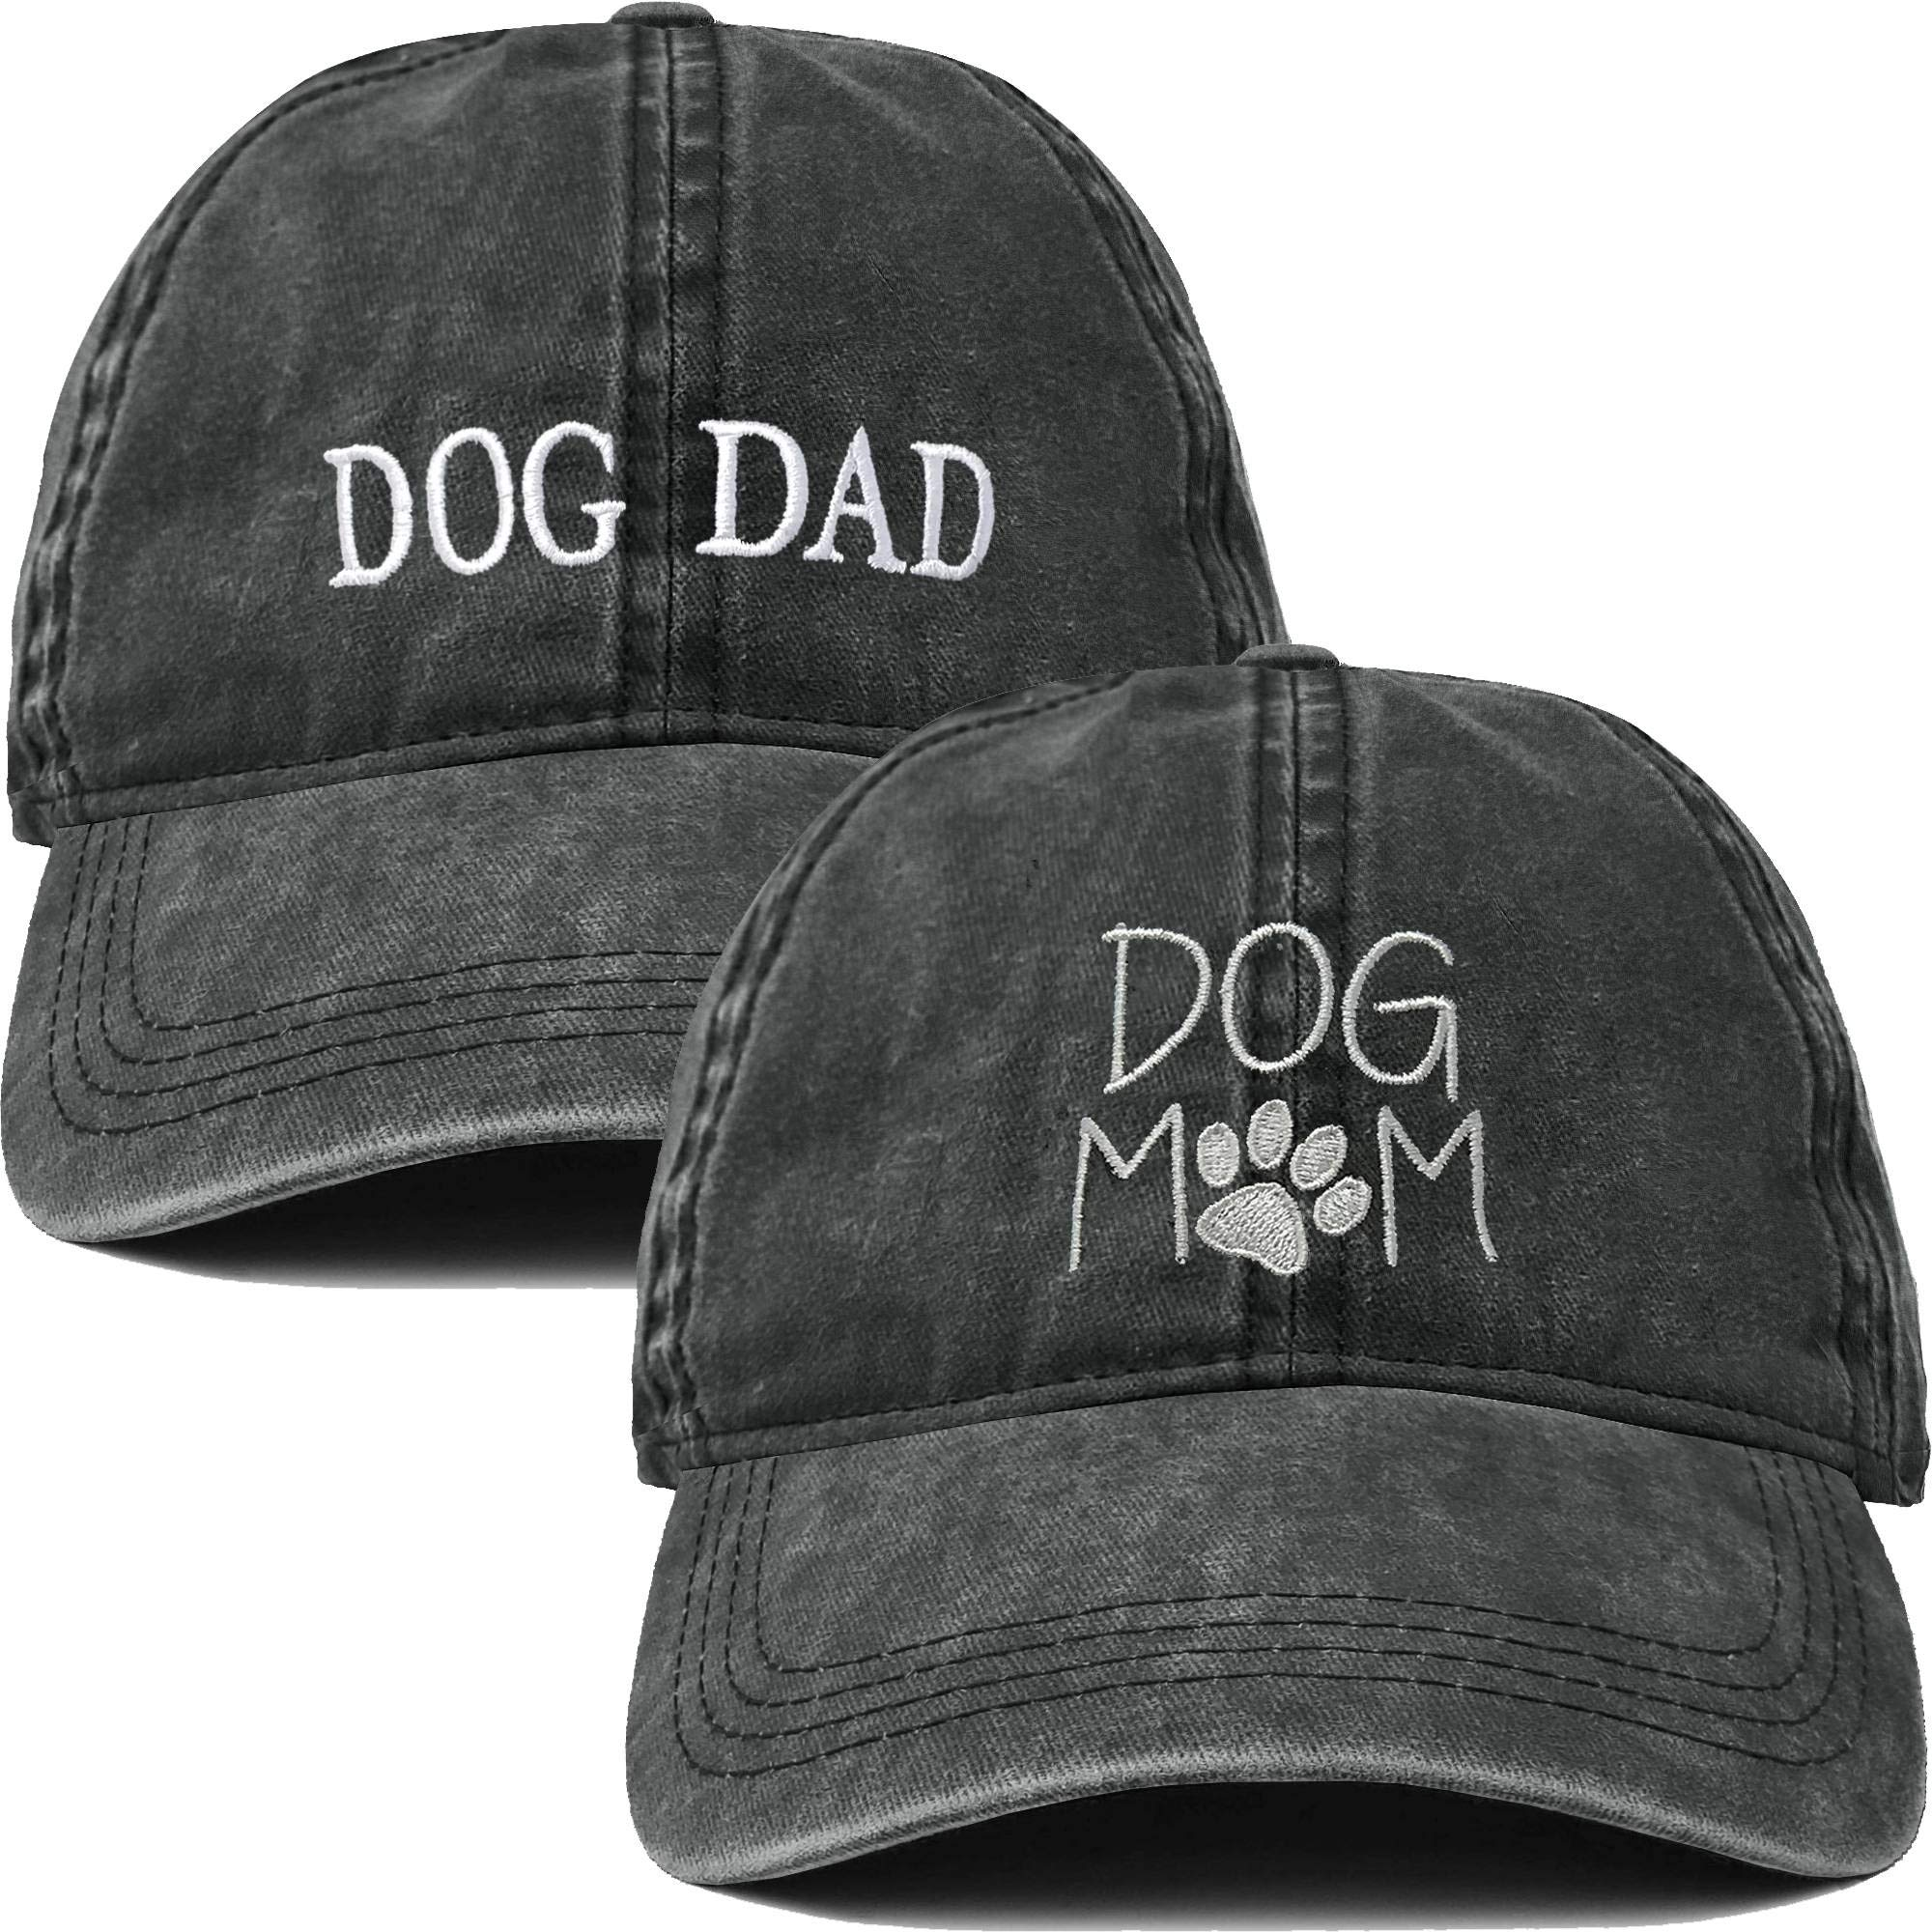 H-214-2-DMD06-W Dog Mom and Dog Dad Hat Bundle - Washed by Funky Junque